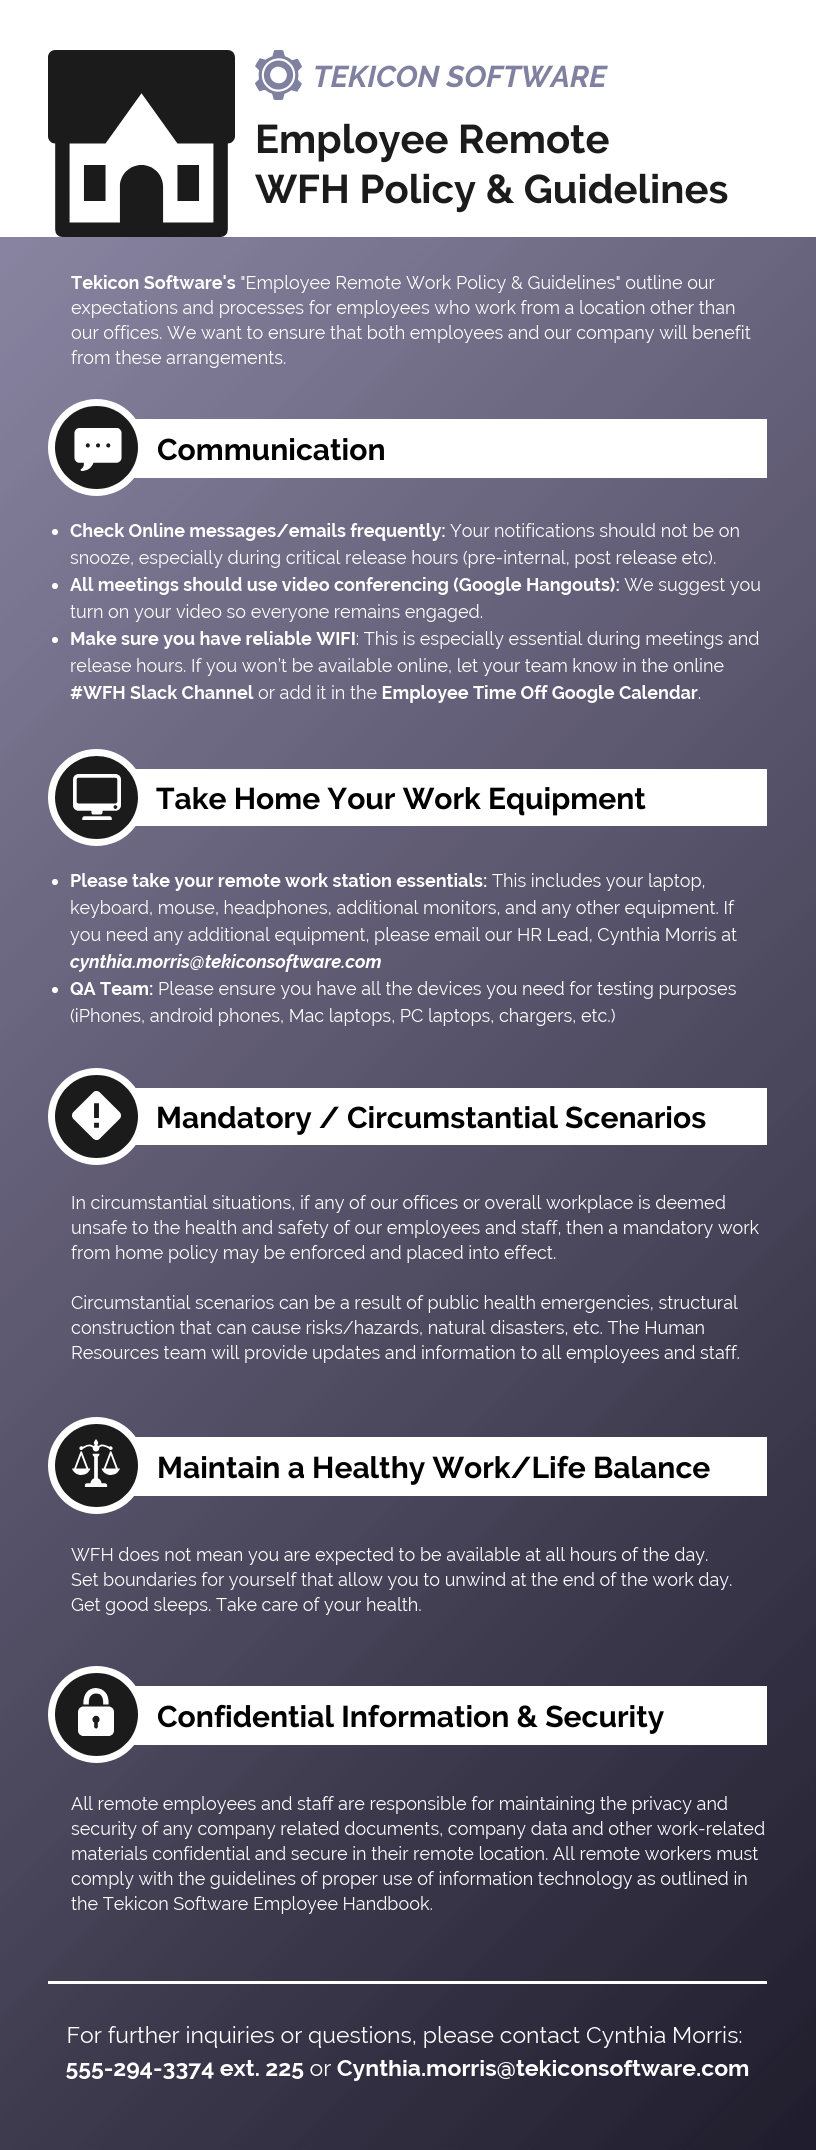 Employee Remote WFH Policy Guide Infographic